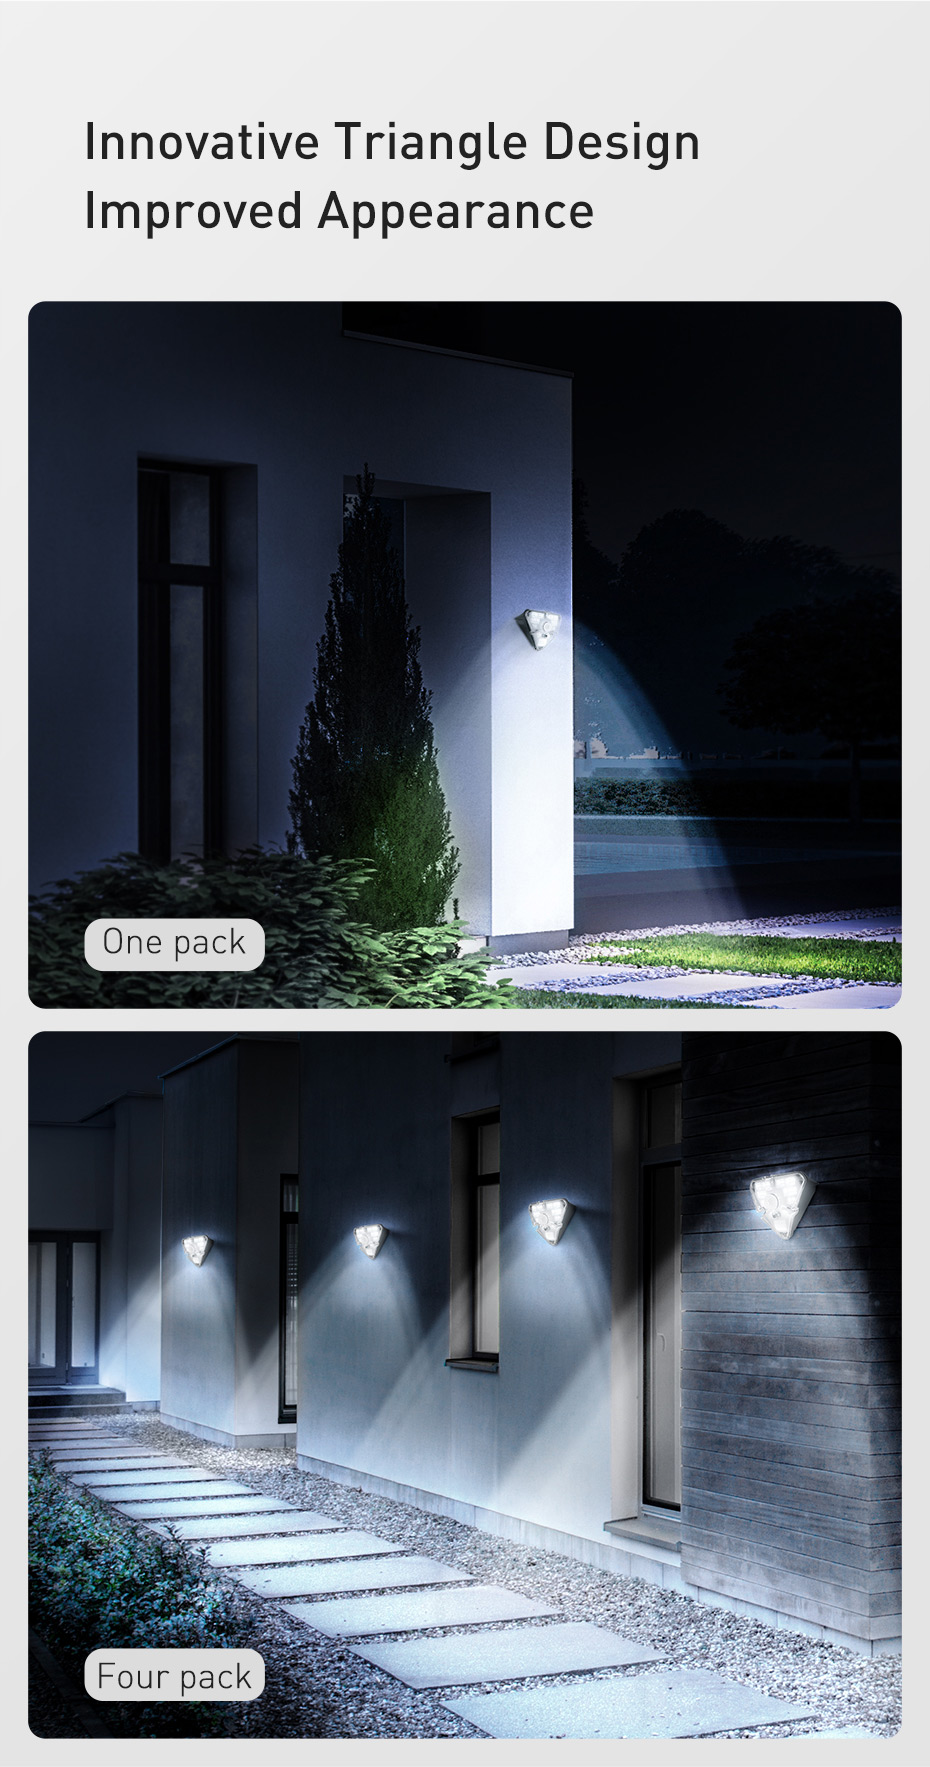 Baseus Outdoor Waterproof LED Solar Light With Motion Sensor 17 Baseus Outdoor Waterproof LED Solar Light With Motion Sensor Love Me Some Gadgets